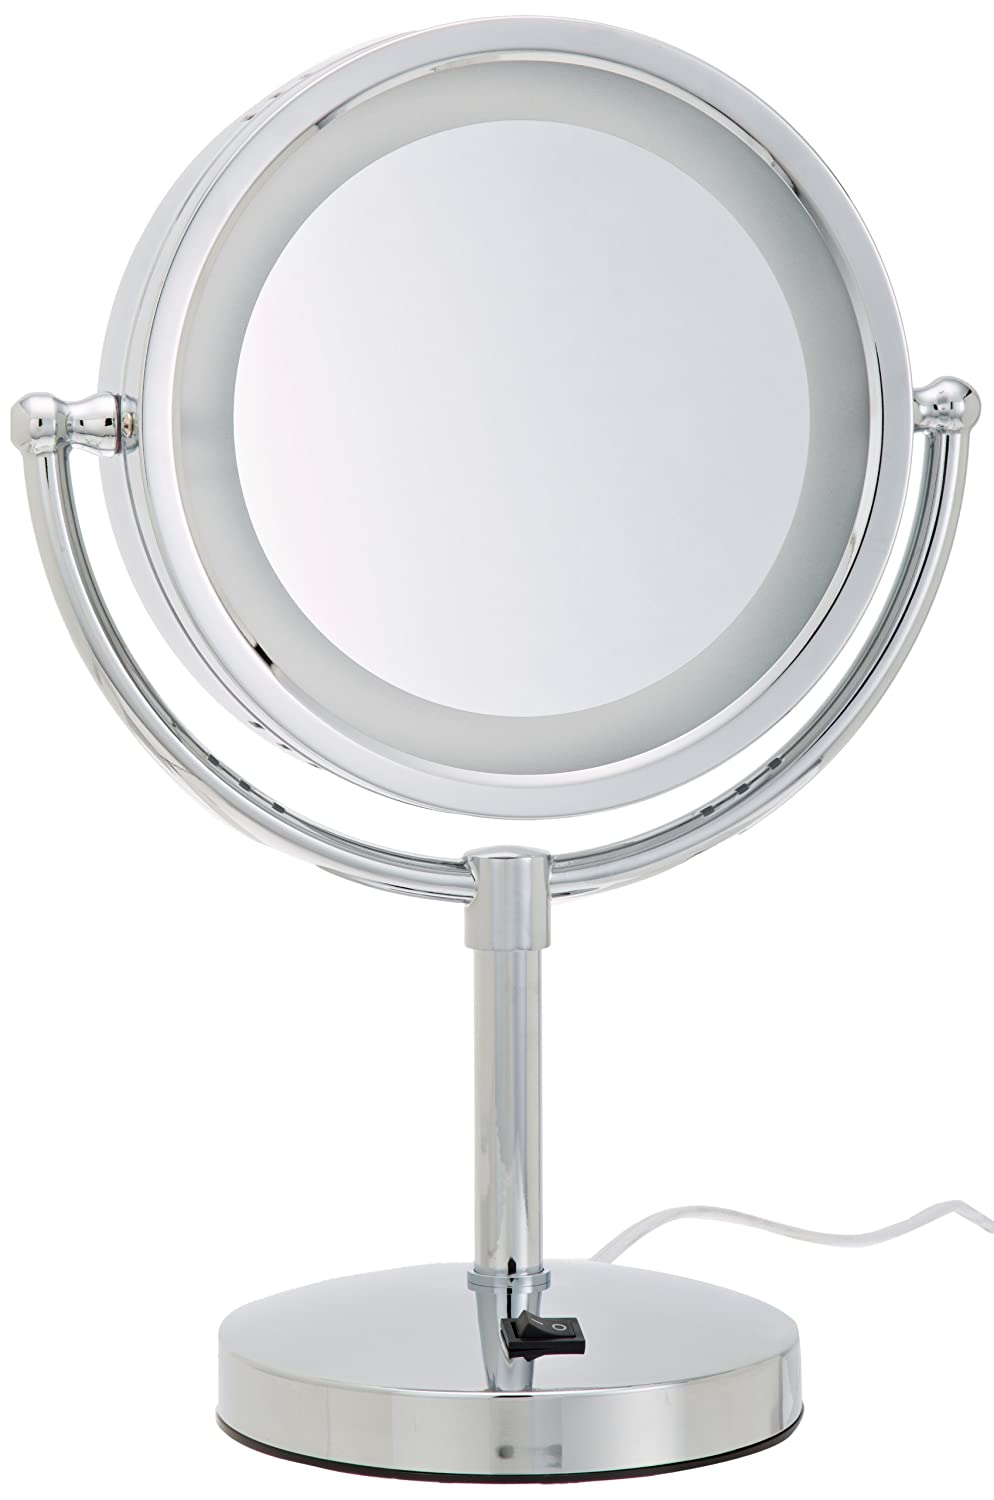 Jerdon HL745CO 8.5-Inch Halo Lighted Vanity Mirror with 5x Magnification, Chrome Finish